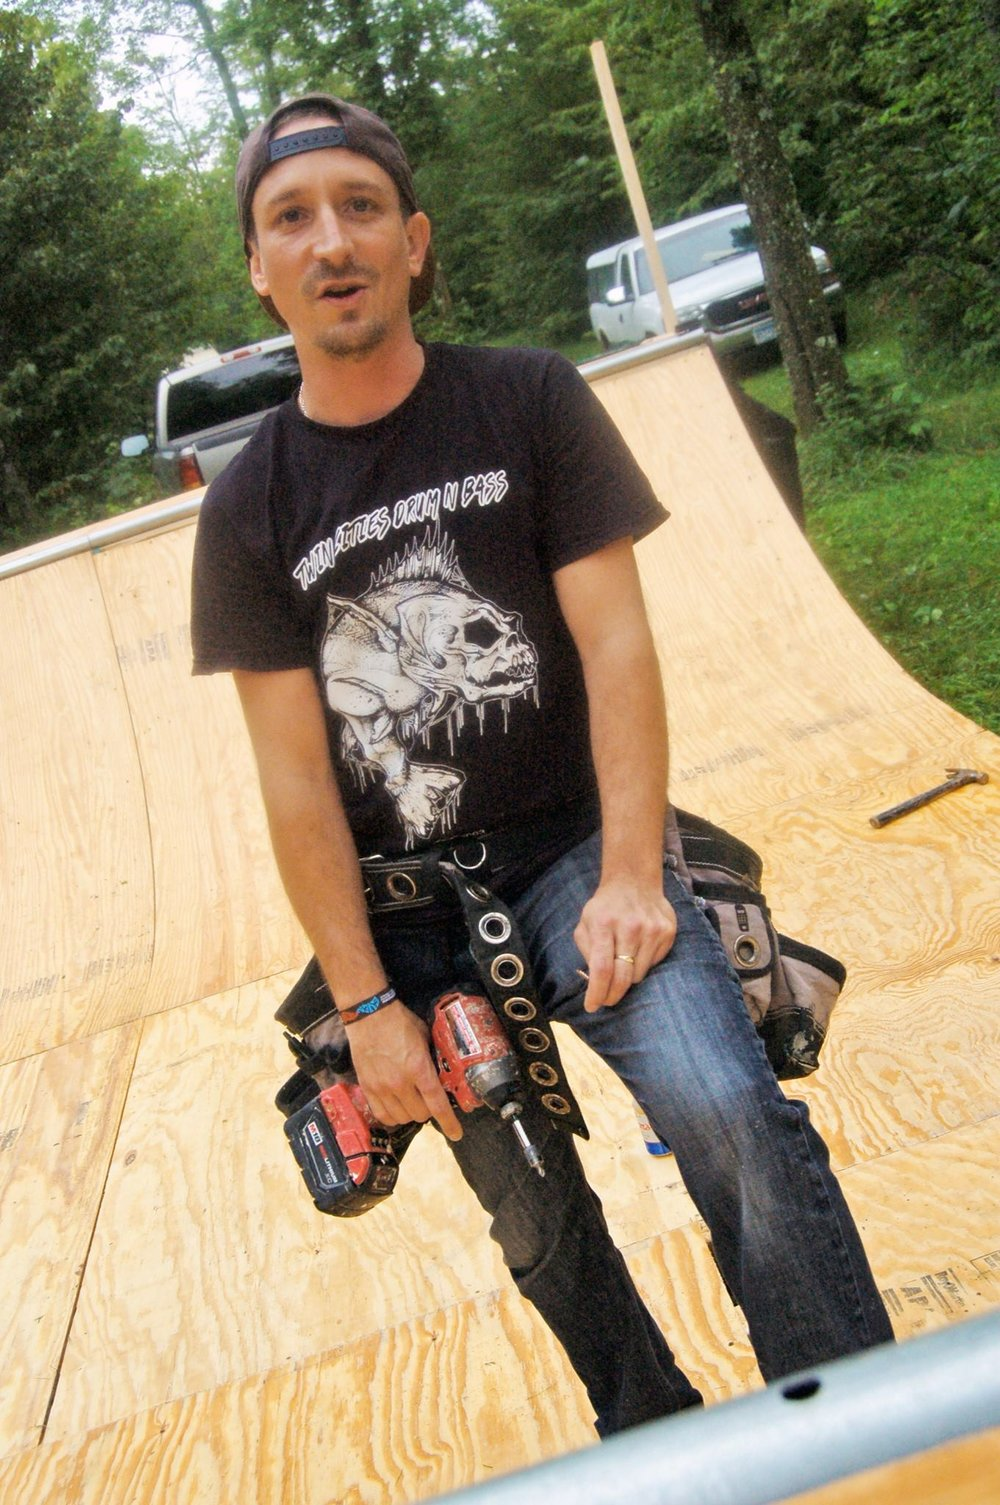 Virgo putting the finishing touches on the skate ramp. Photo courtesy James Kloiber.